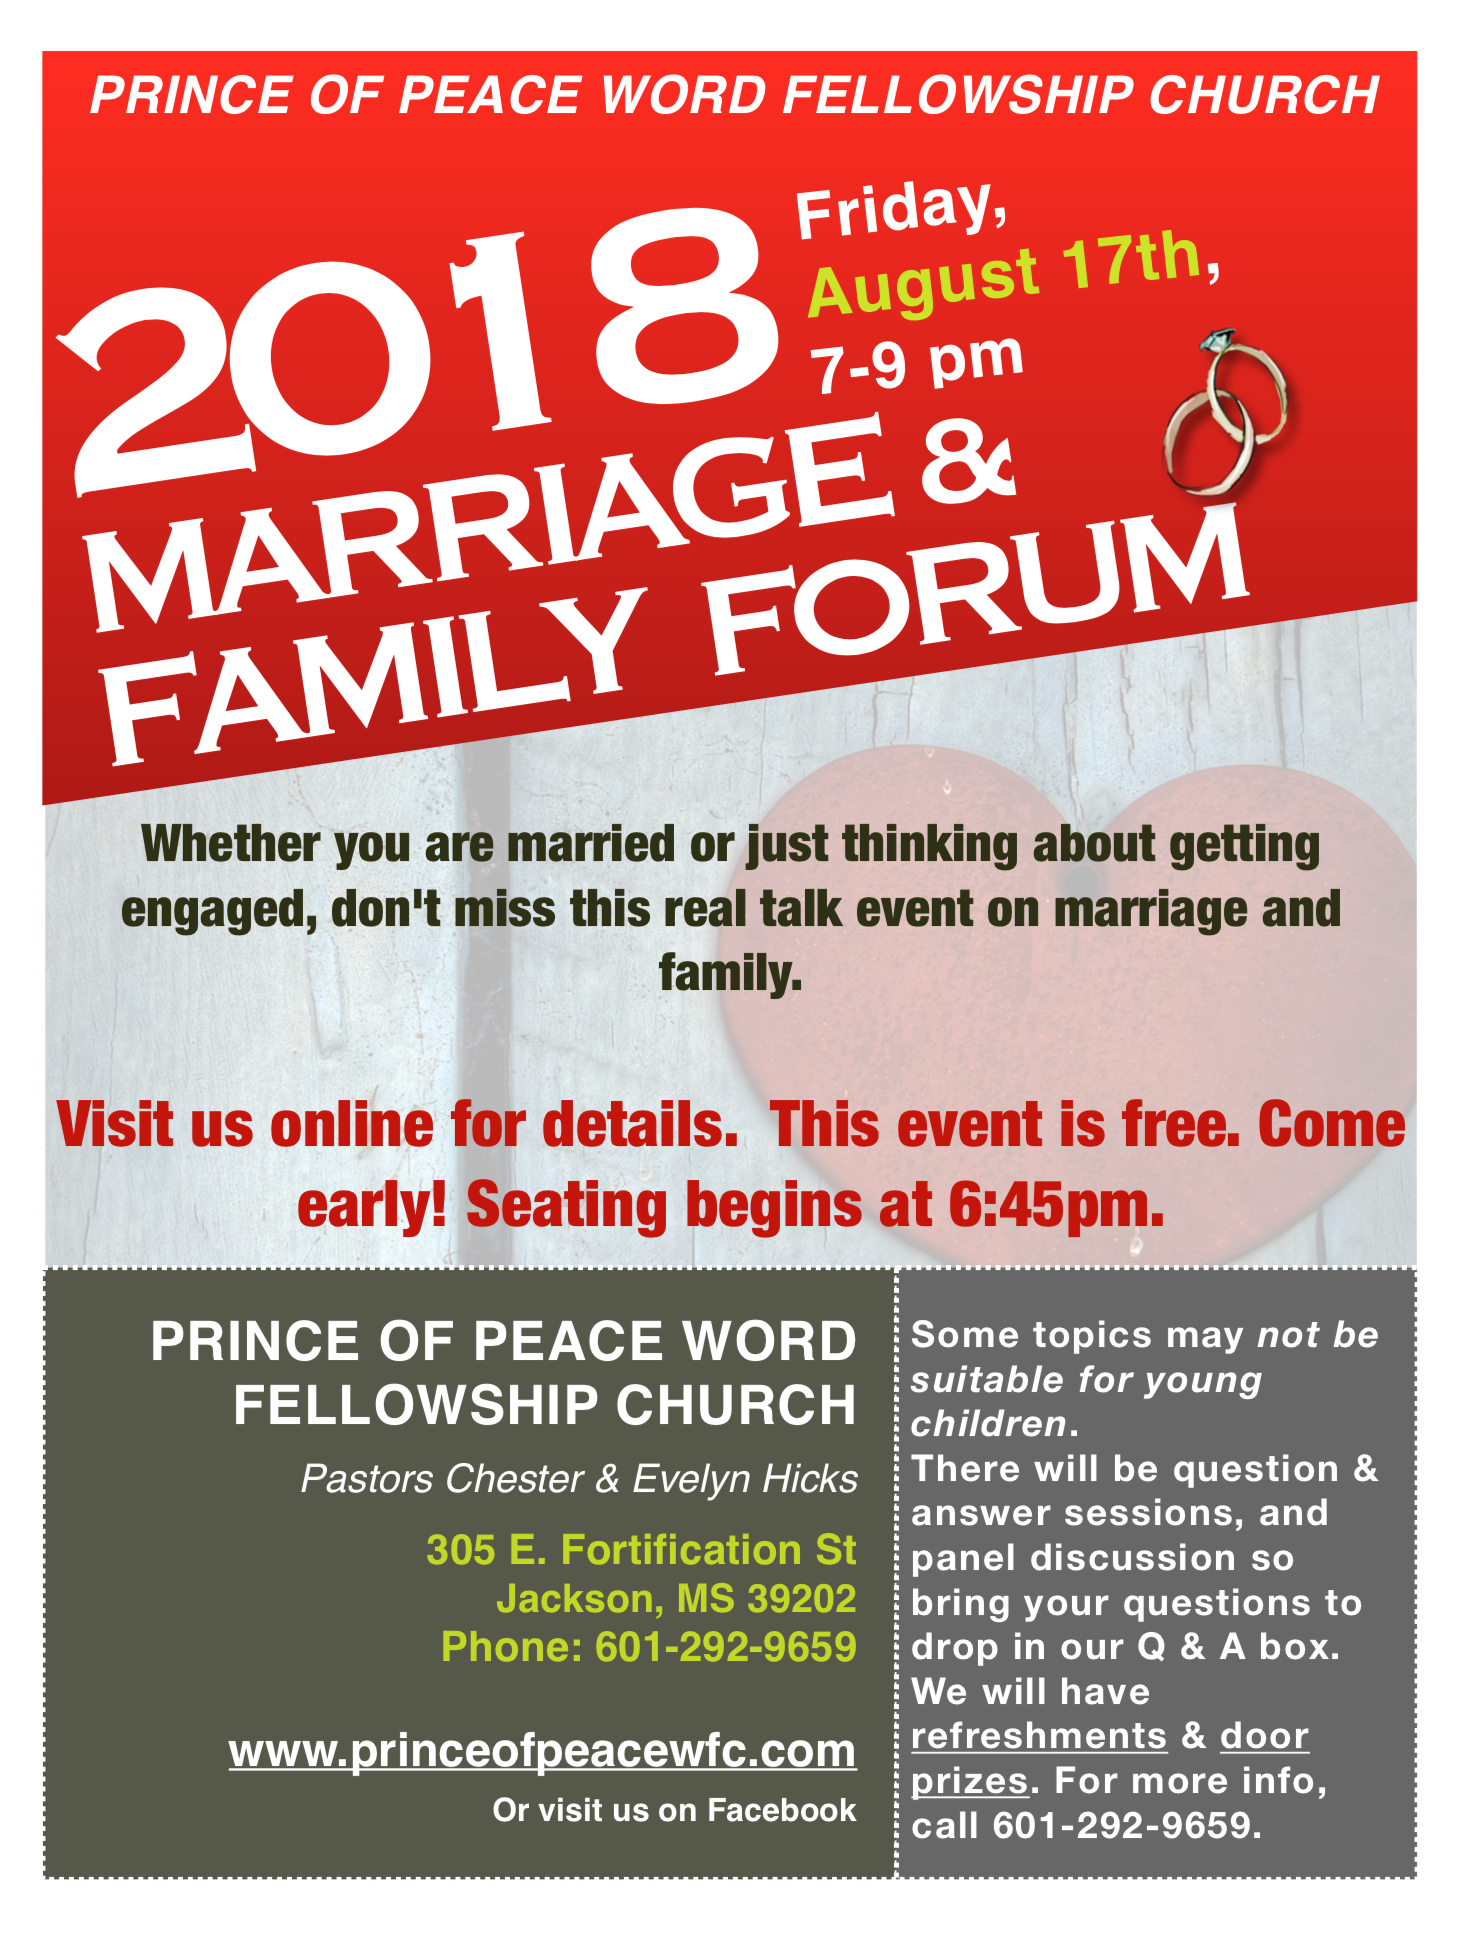 2018 Marriage & Family Forum — Prince of Peace Word